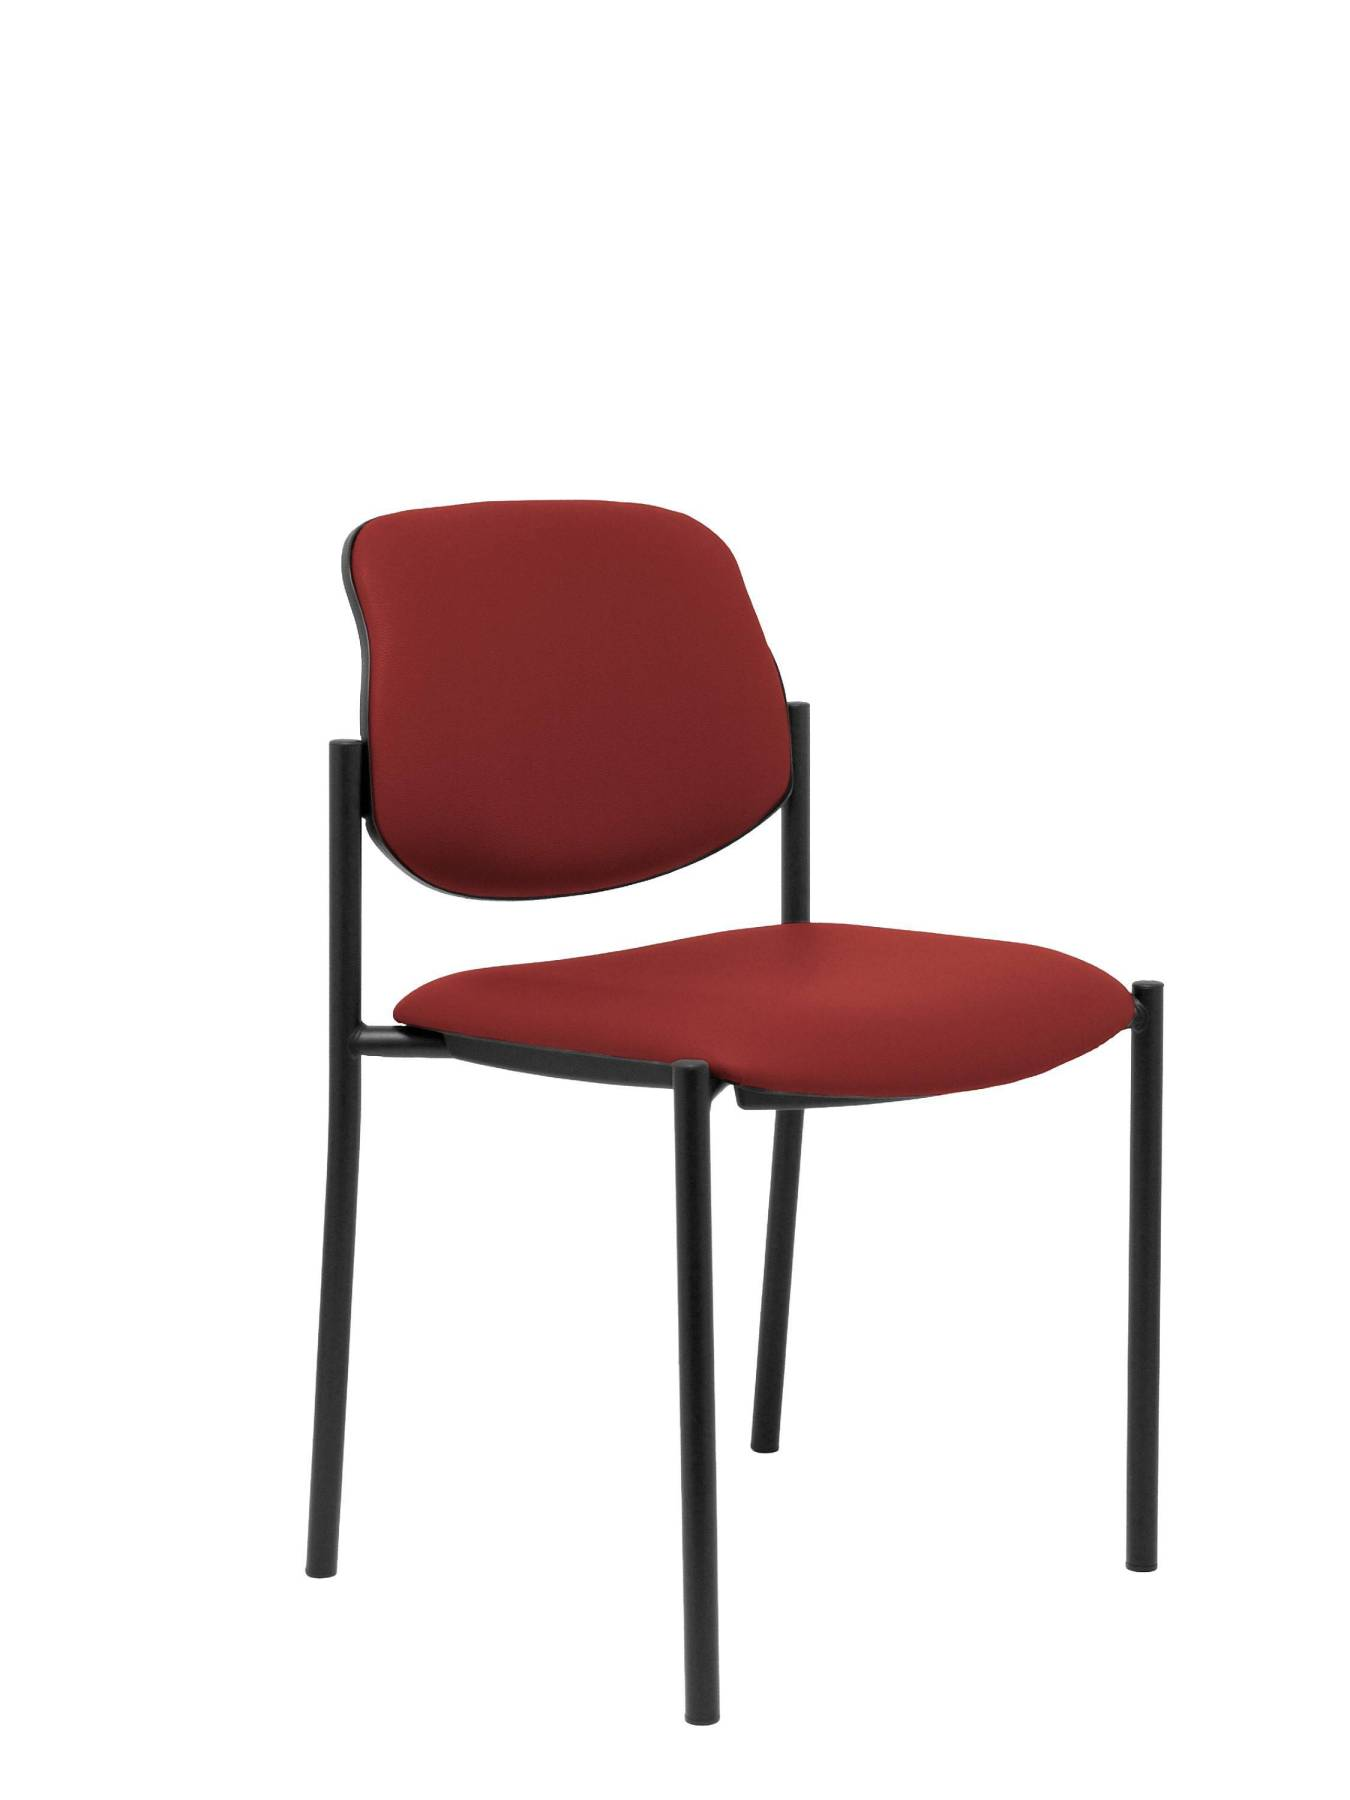 Visitor Chair 4's Topsy And Estructrua Negro-up Seat And Backstop Upholstered In Tissue Similpiel Maroon Color TAPHOLE